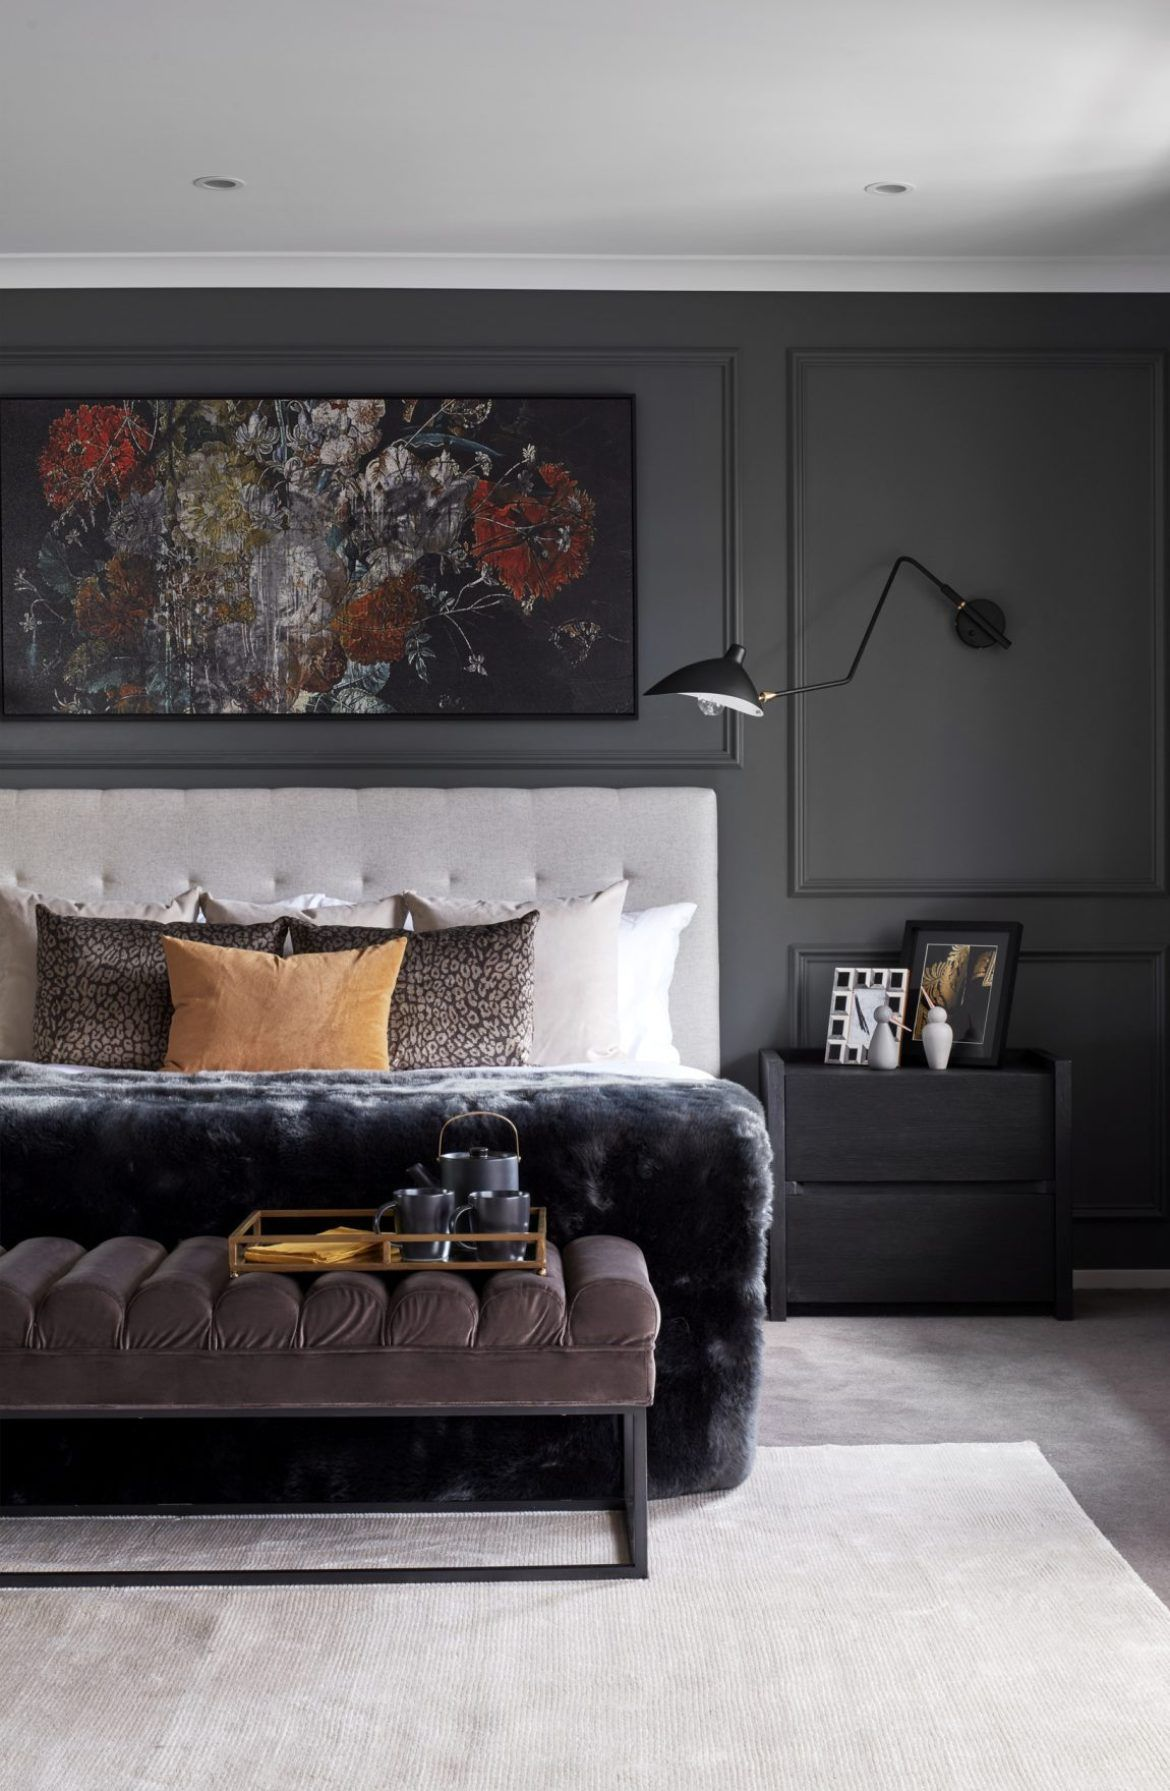 Luxury Hotel Style Living With Metricon S New Home Design